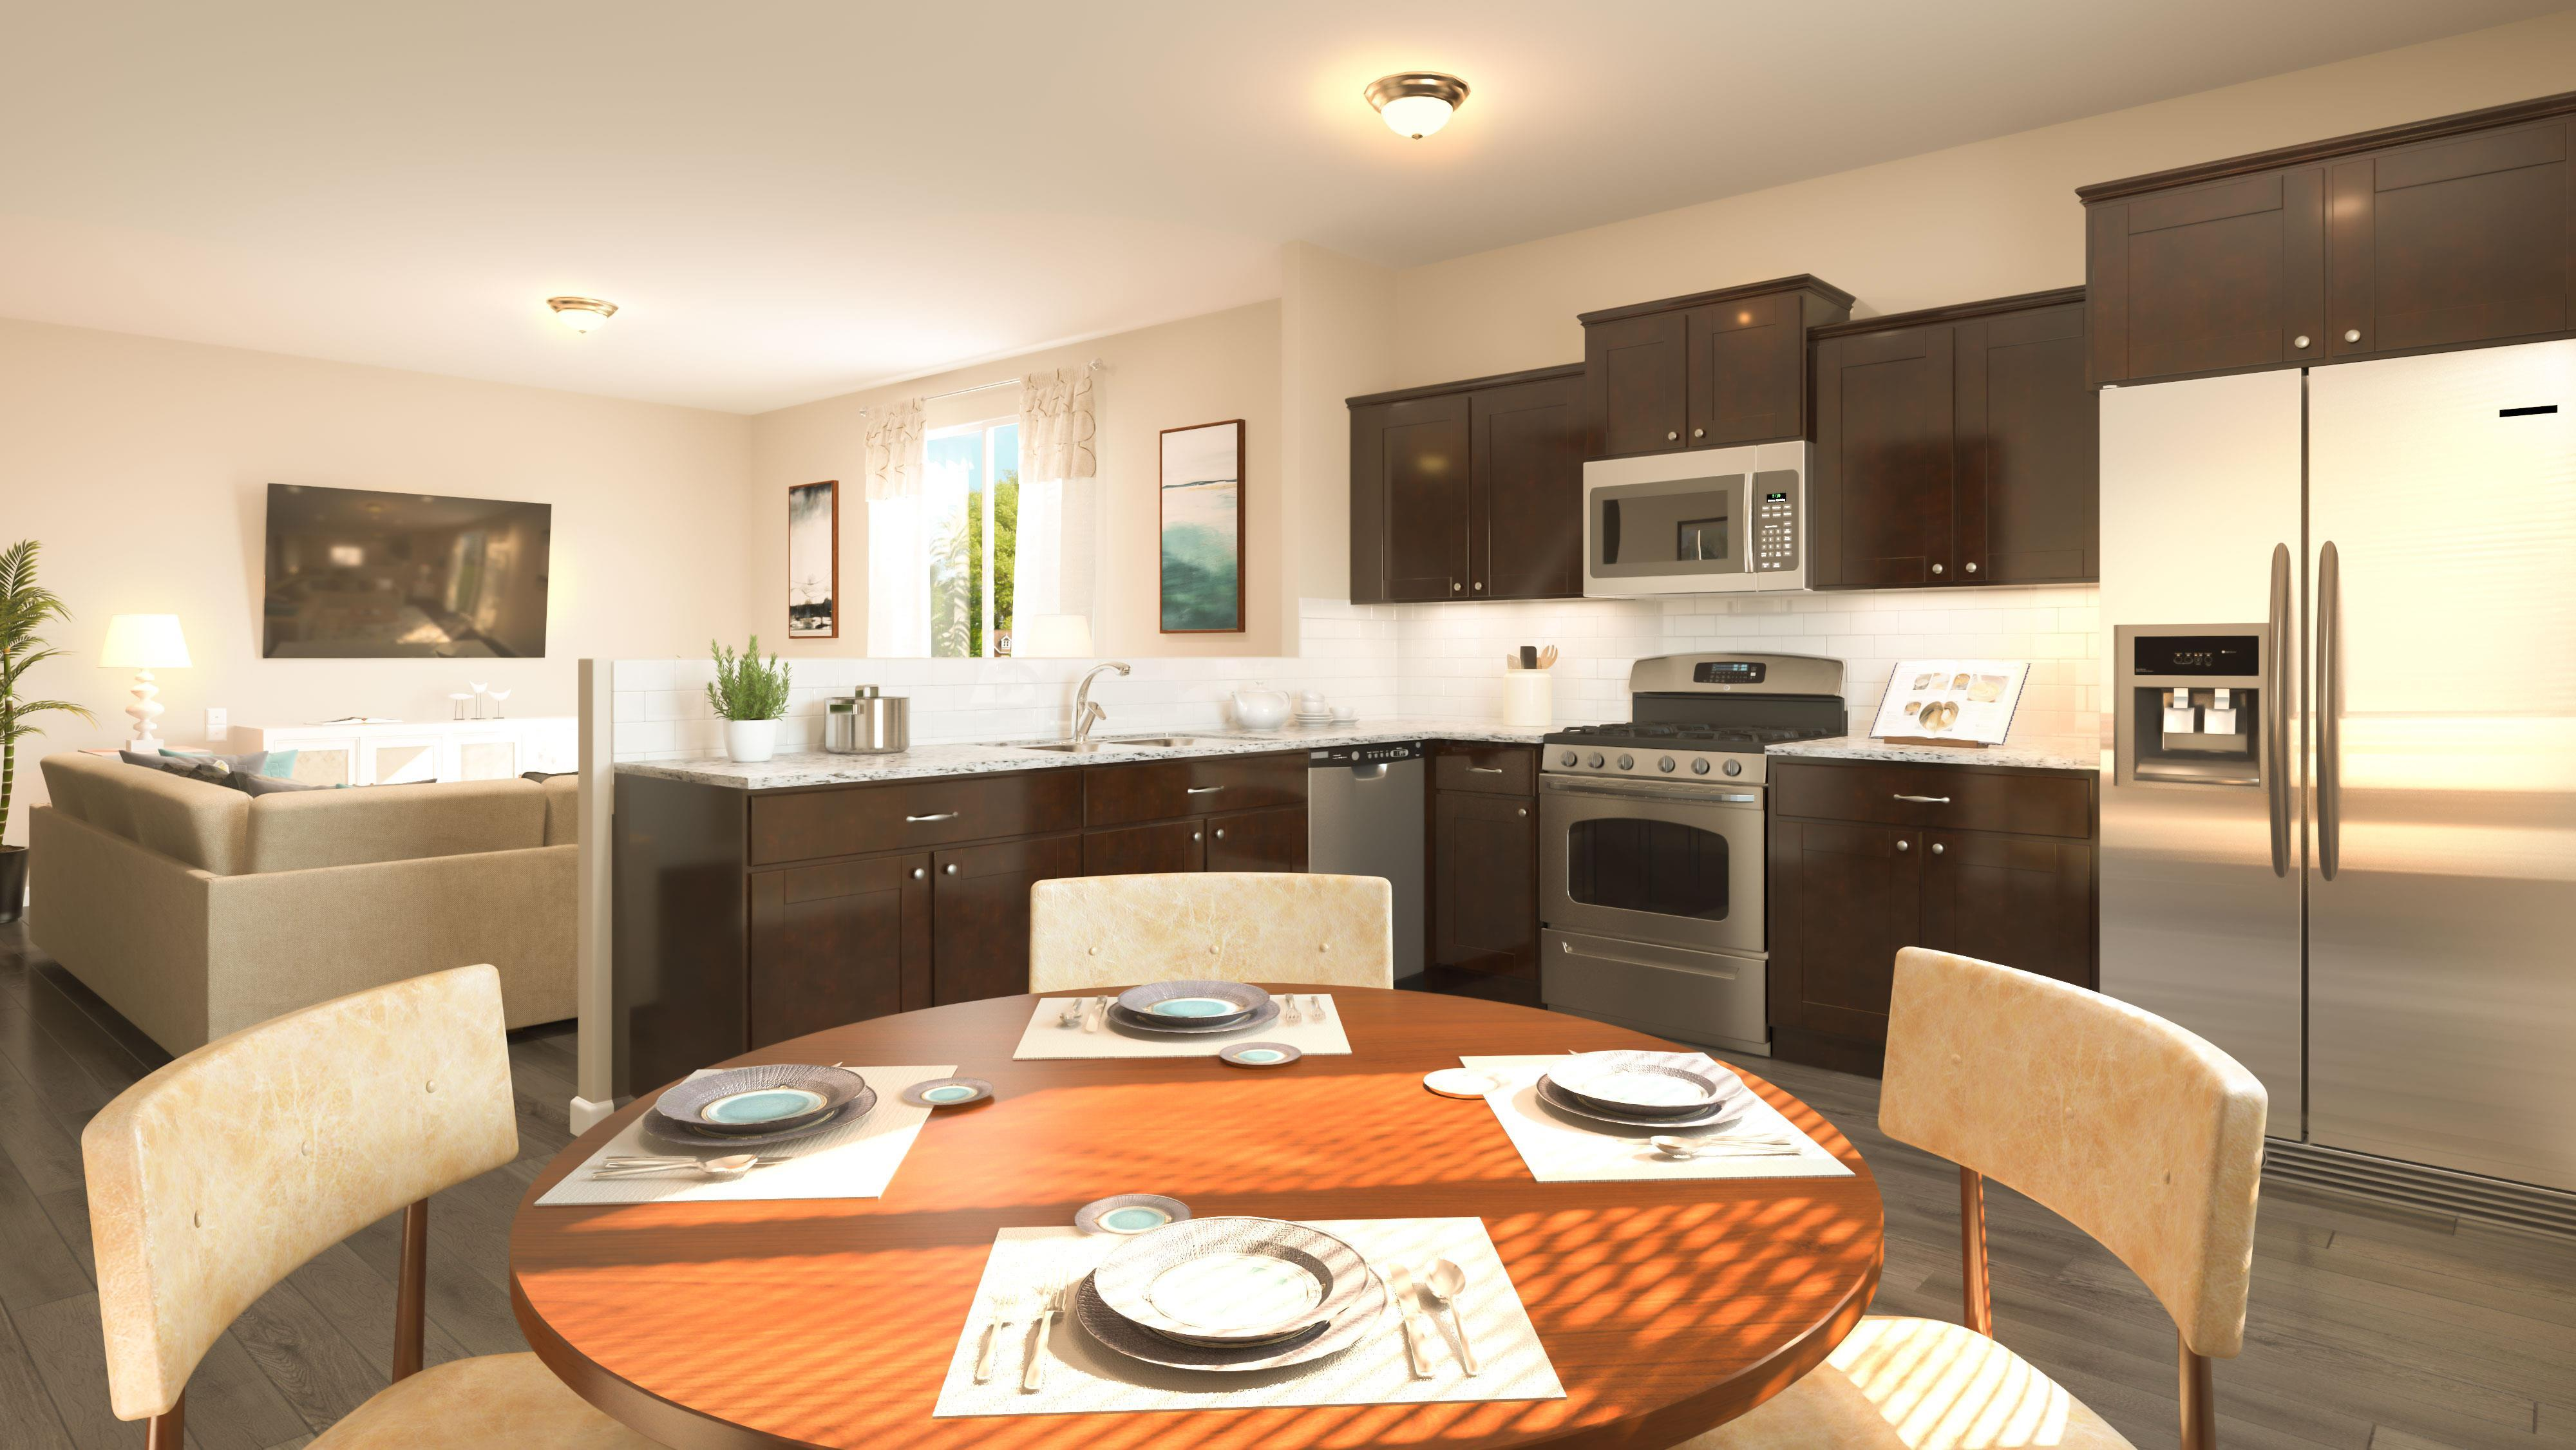 Kitchen featured in the Integrity 1560 By Allen Edwin Homes in Grand Rapids, MI